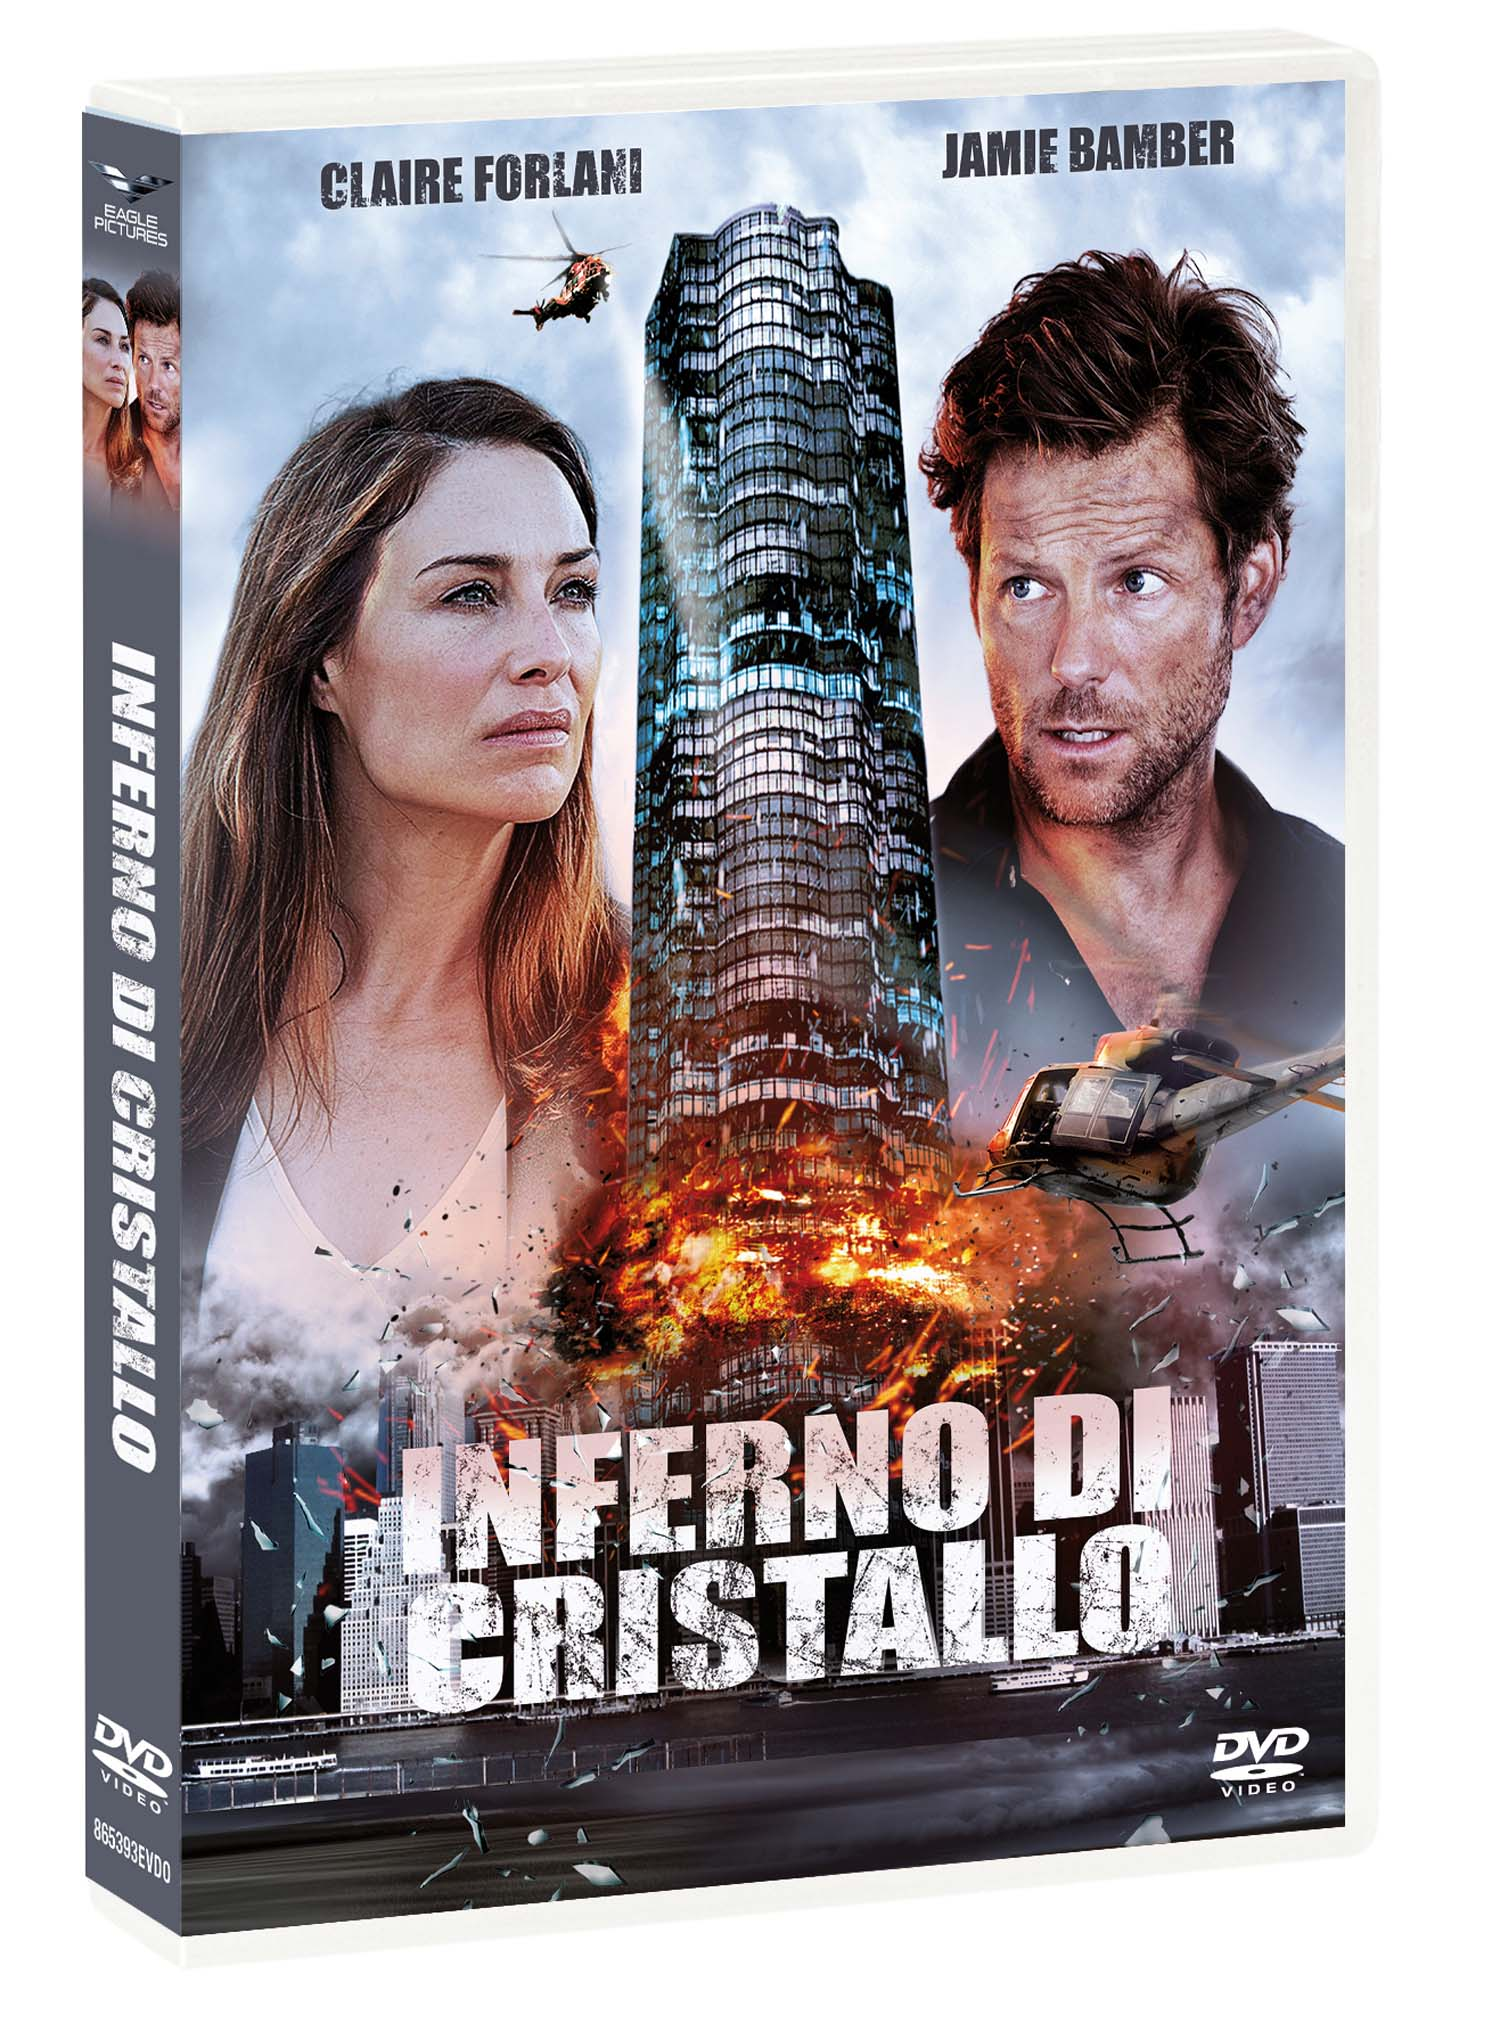 INFERNO DI CRISTALLO (DVD)